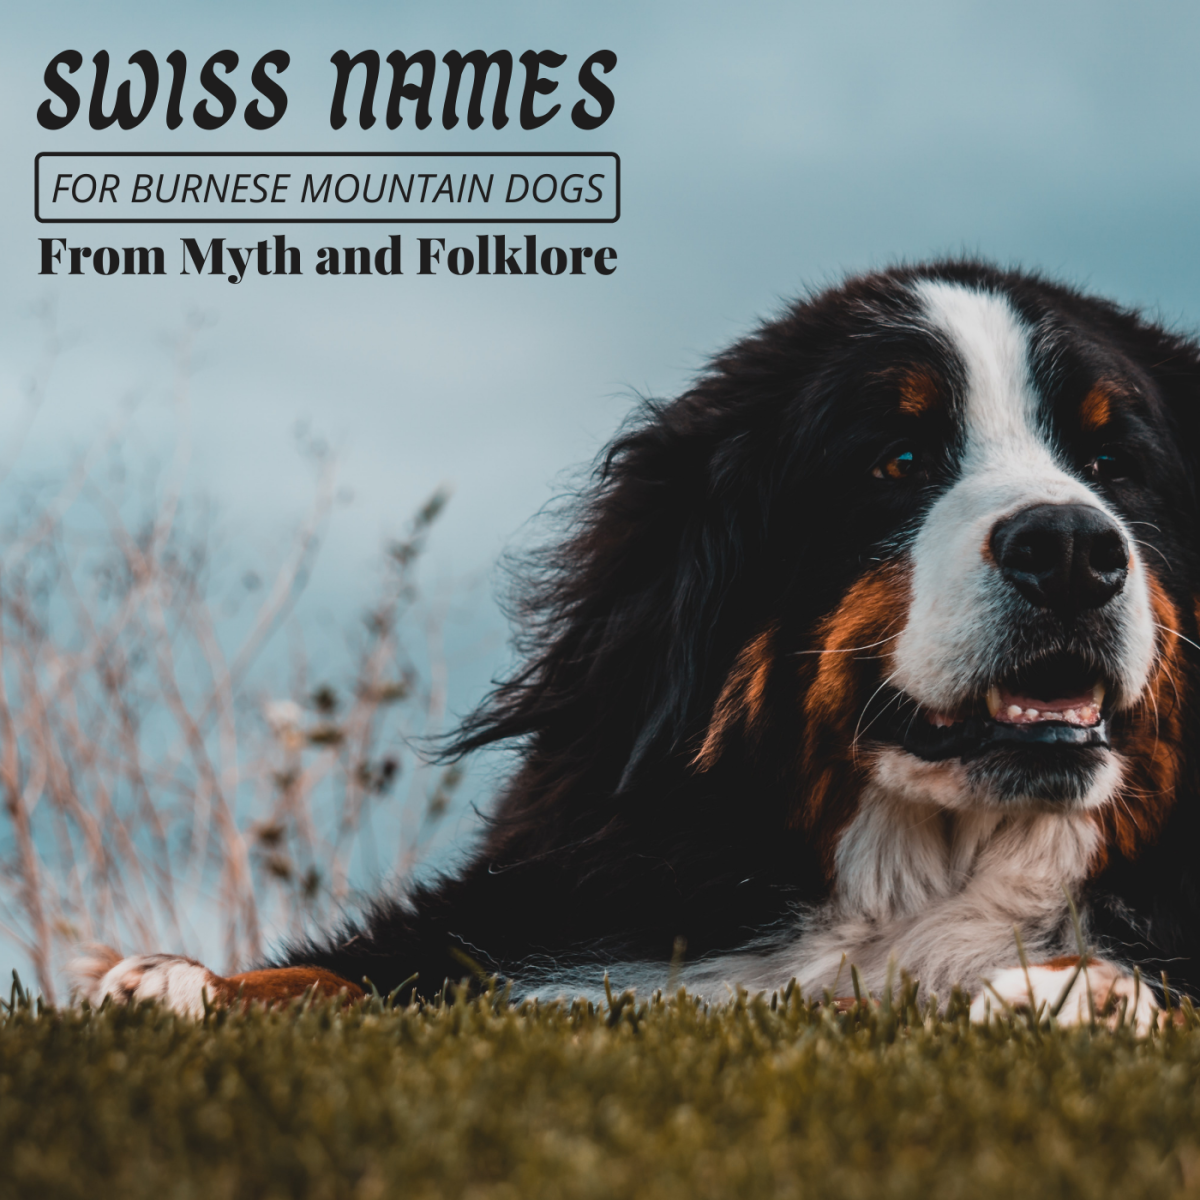 Why not give your Bernese Mountain Dog a genuine Swiss name from folklore?